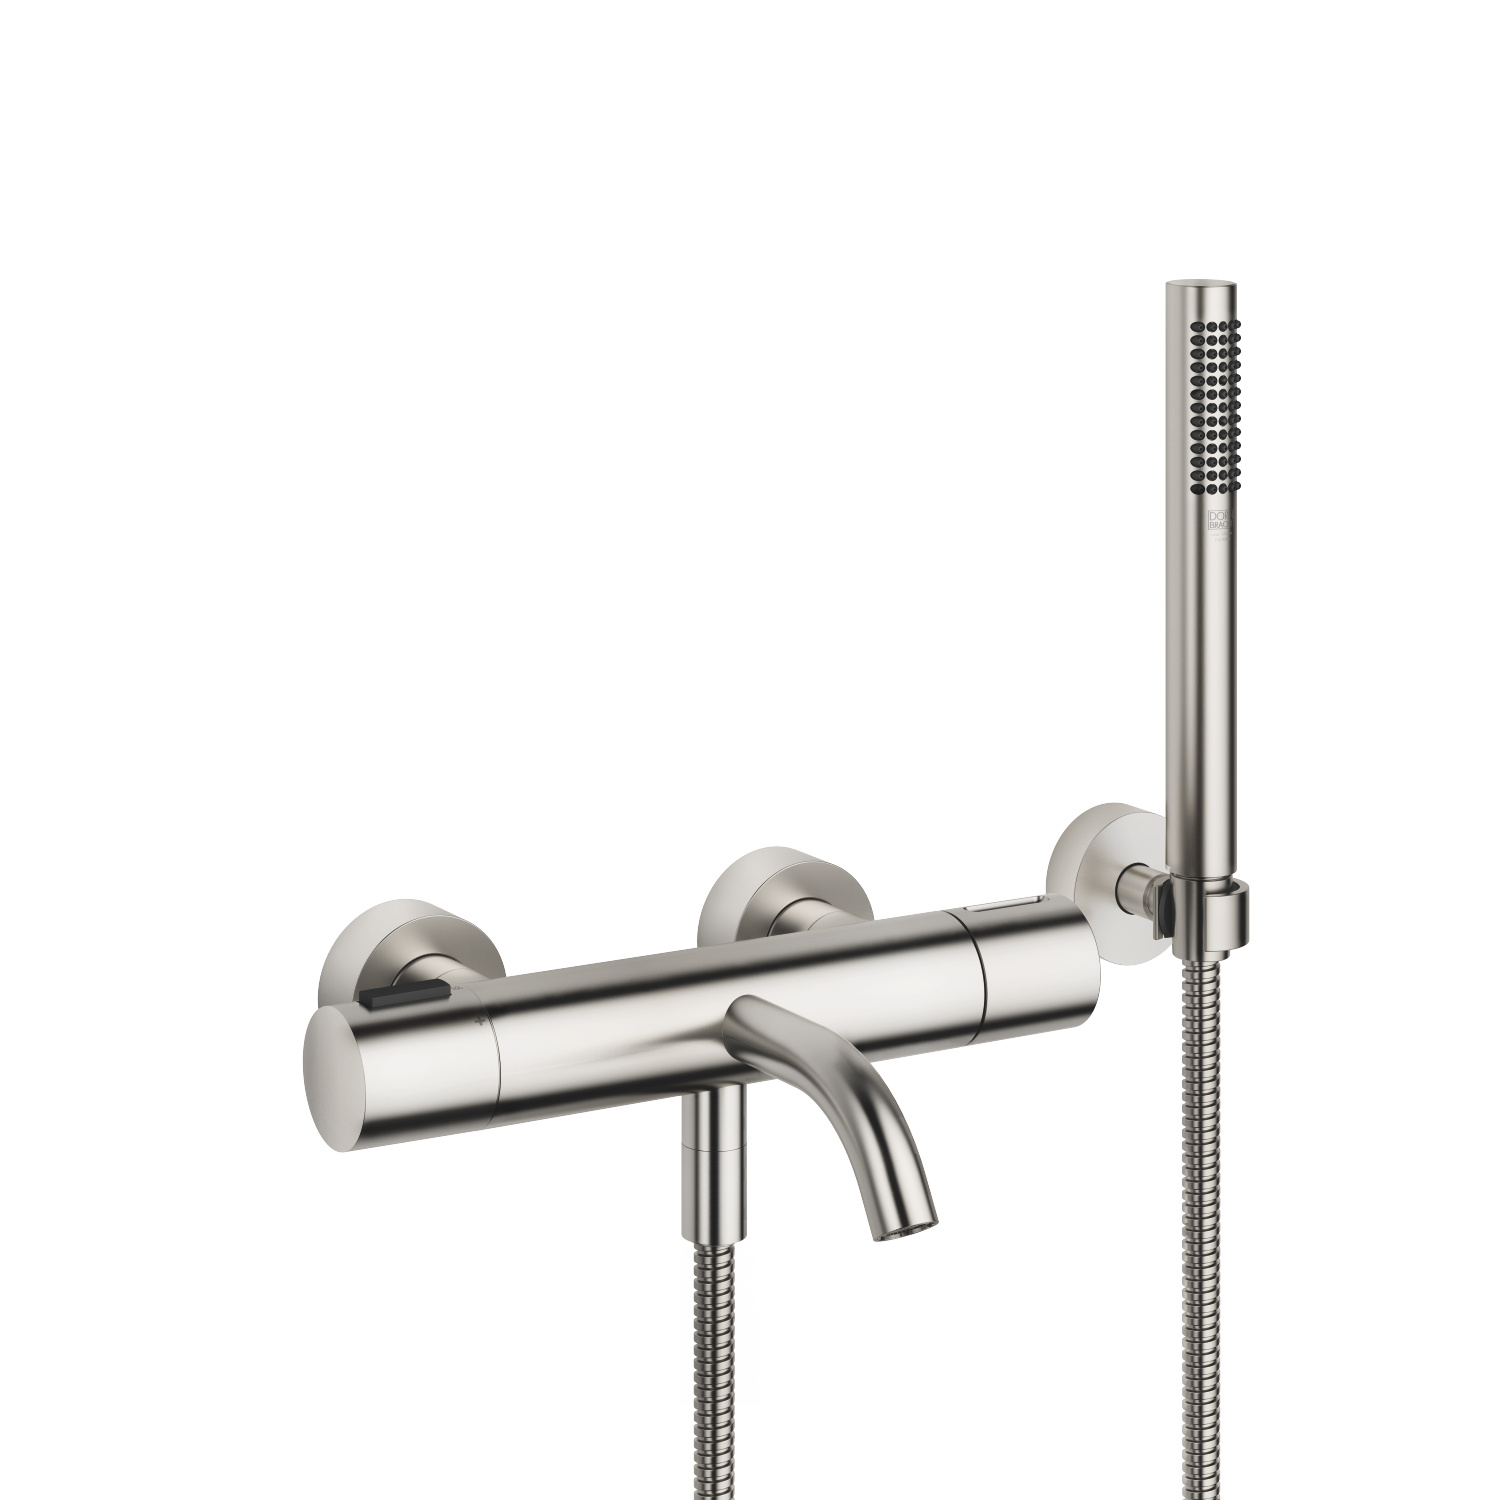 Bath thermostat for wall mounting with hand shower set - platinum matt